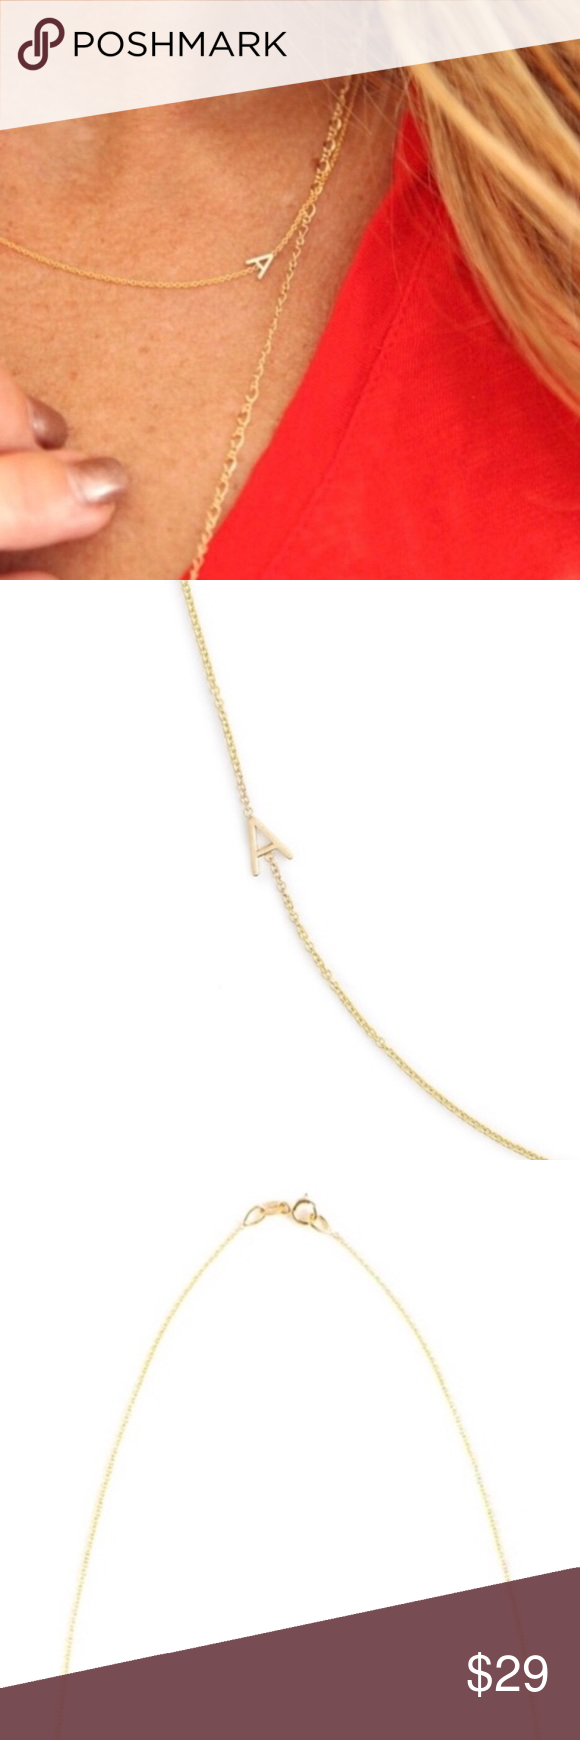 Photo of Delicate Gold Chain Initial Necklace | Letter A Delicate Gold Chain Initial Neck…